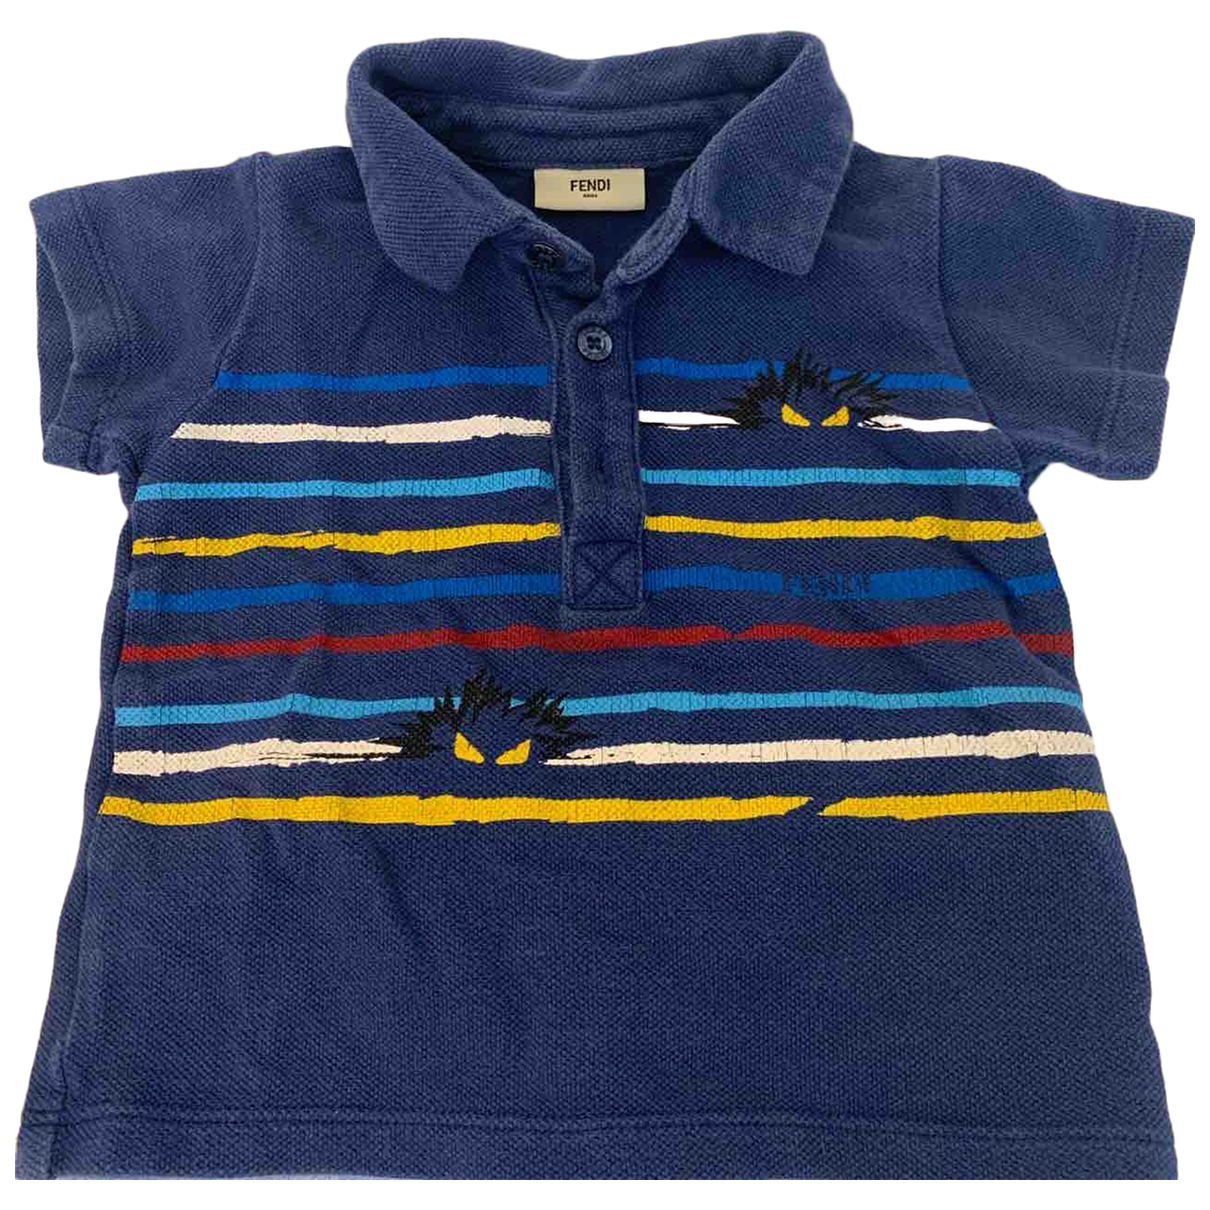 Fendi \N Multicolour Cotton  top for Kids 9 months - up to 71cm FR